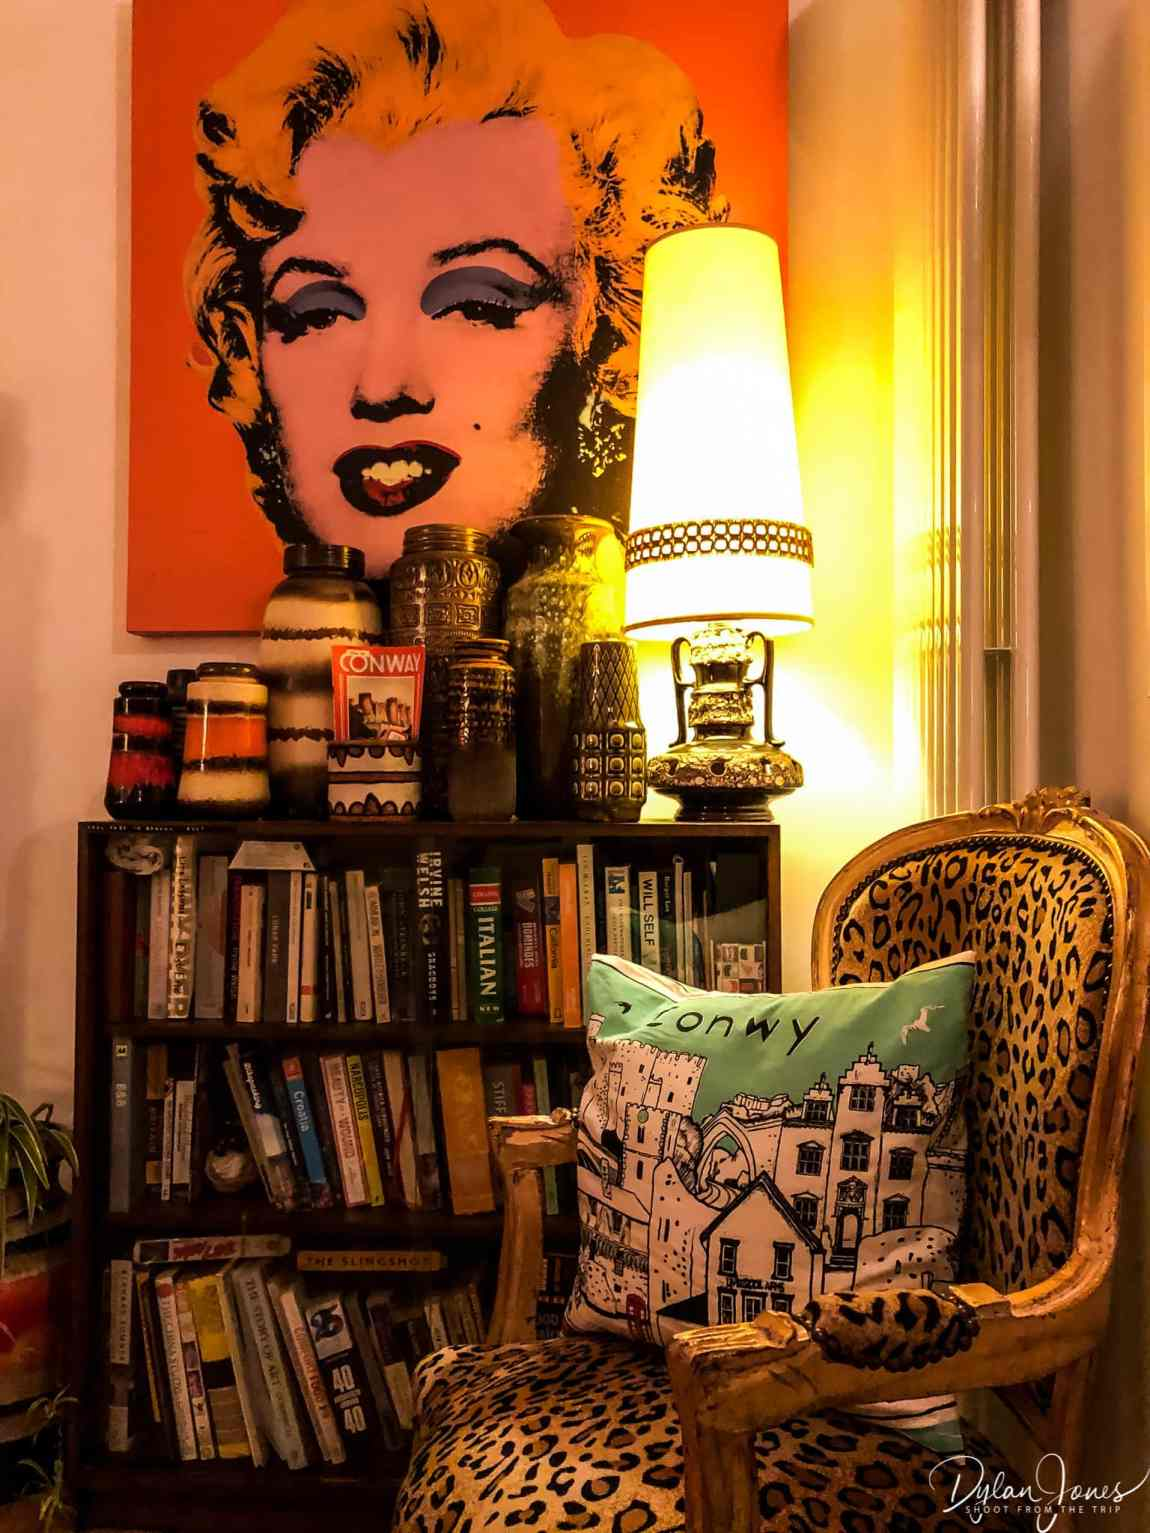 Marilyn, books and leopard print in The Lounge at Number 18, the most Instagrammable accommodation in Conwy